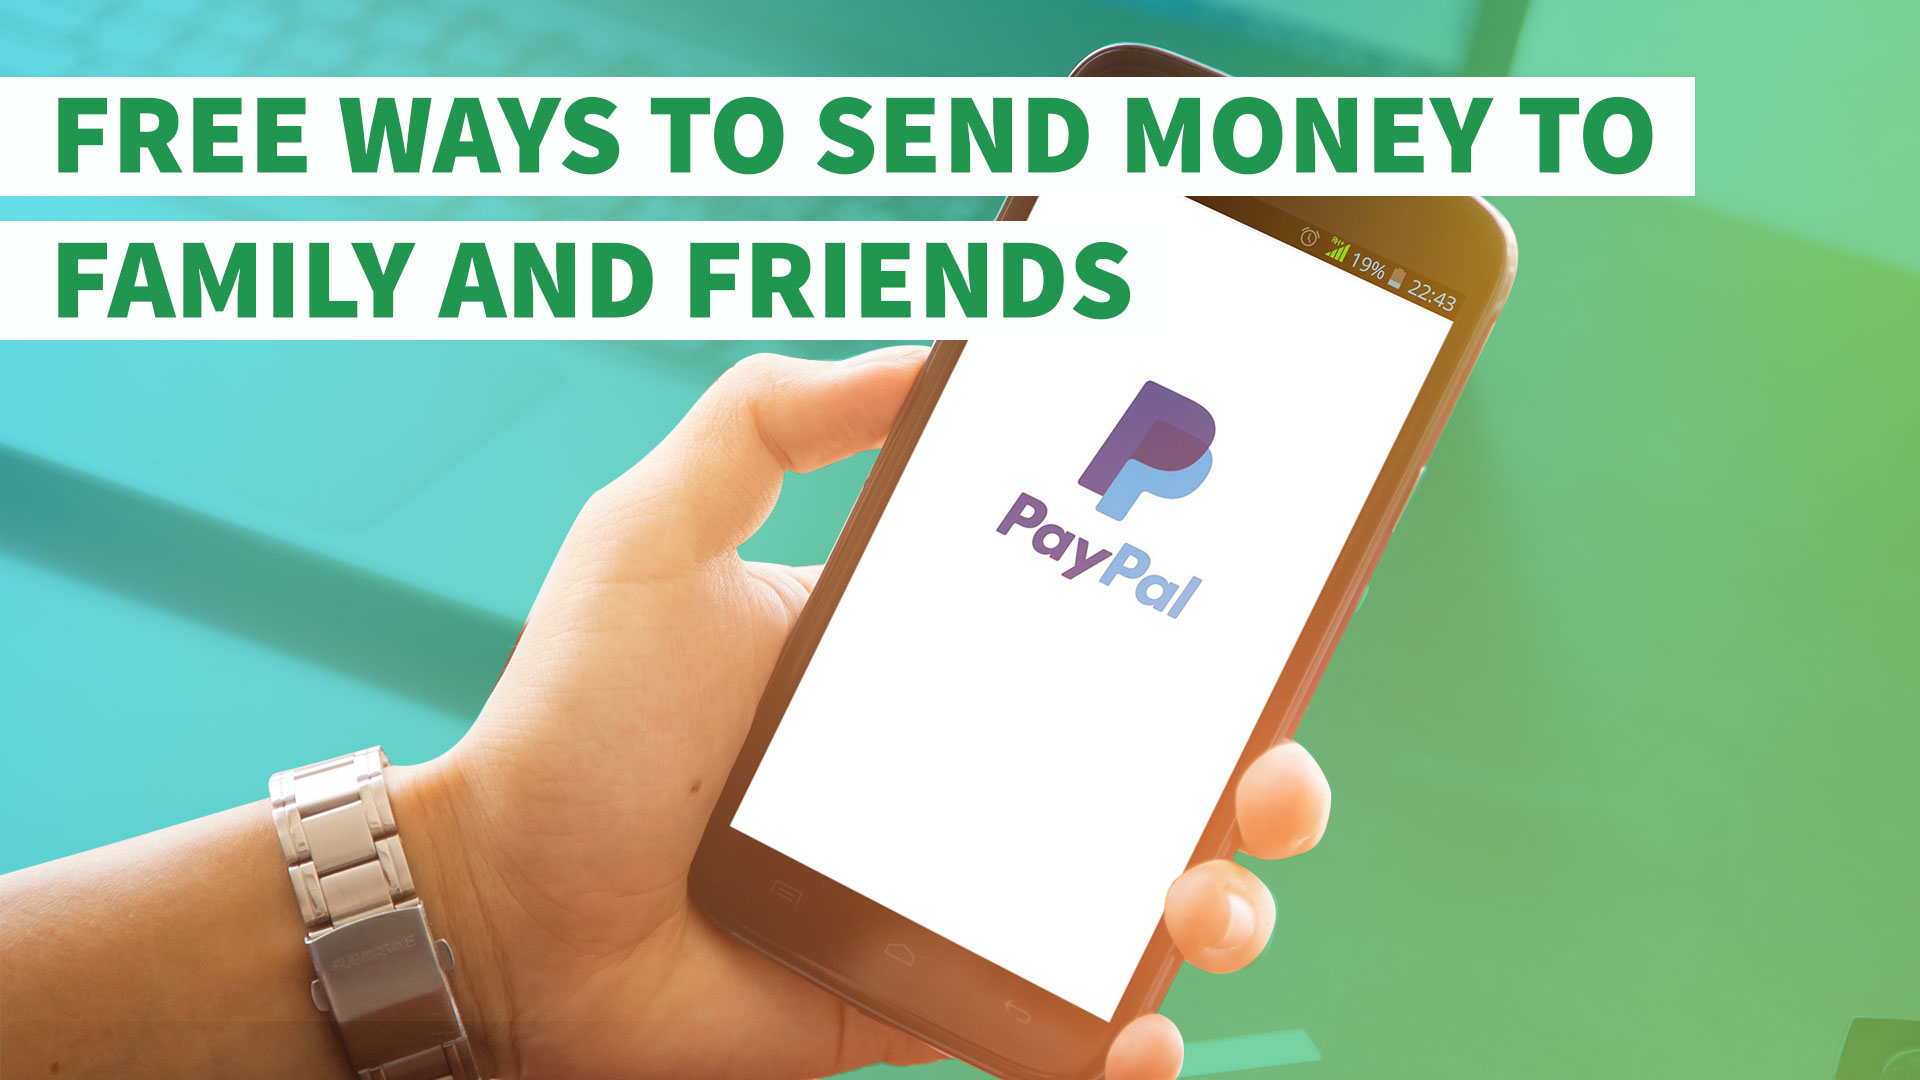 Marvelous 12 Free Ways To Send Money To Family And Friends Gobankingrates Wiring Cloud Oideiuggs Outletorg